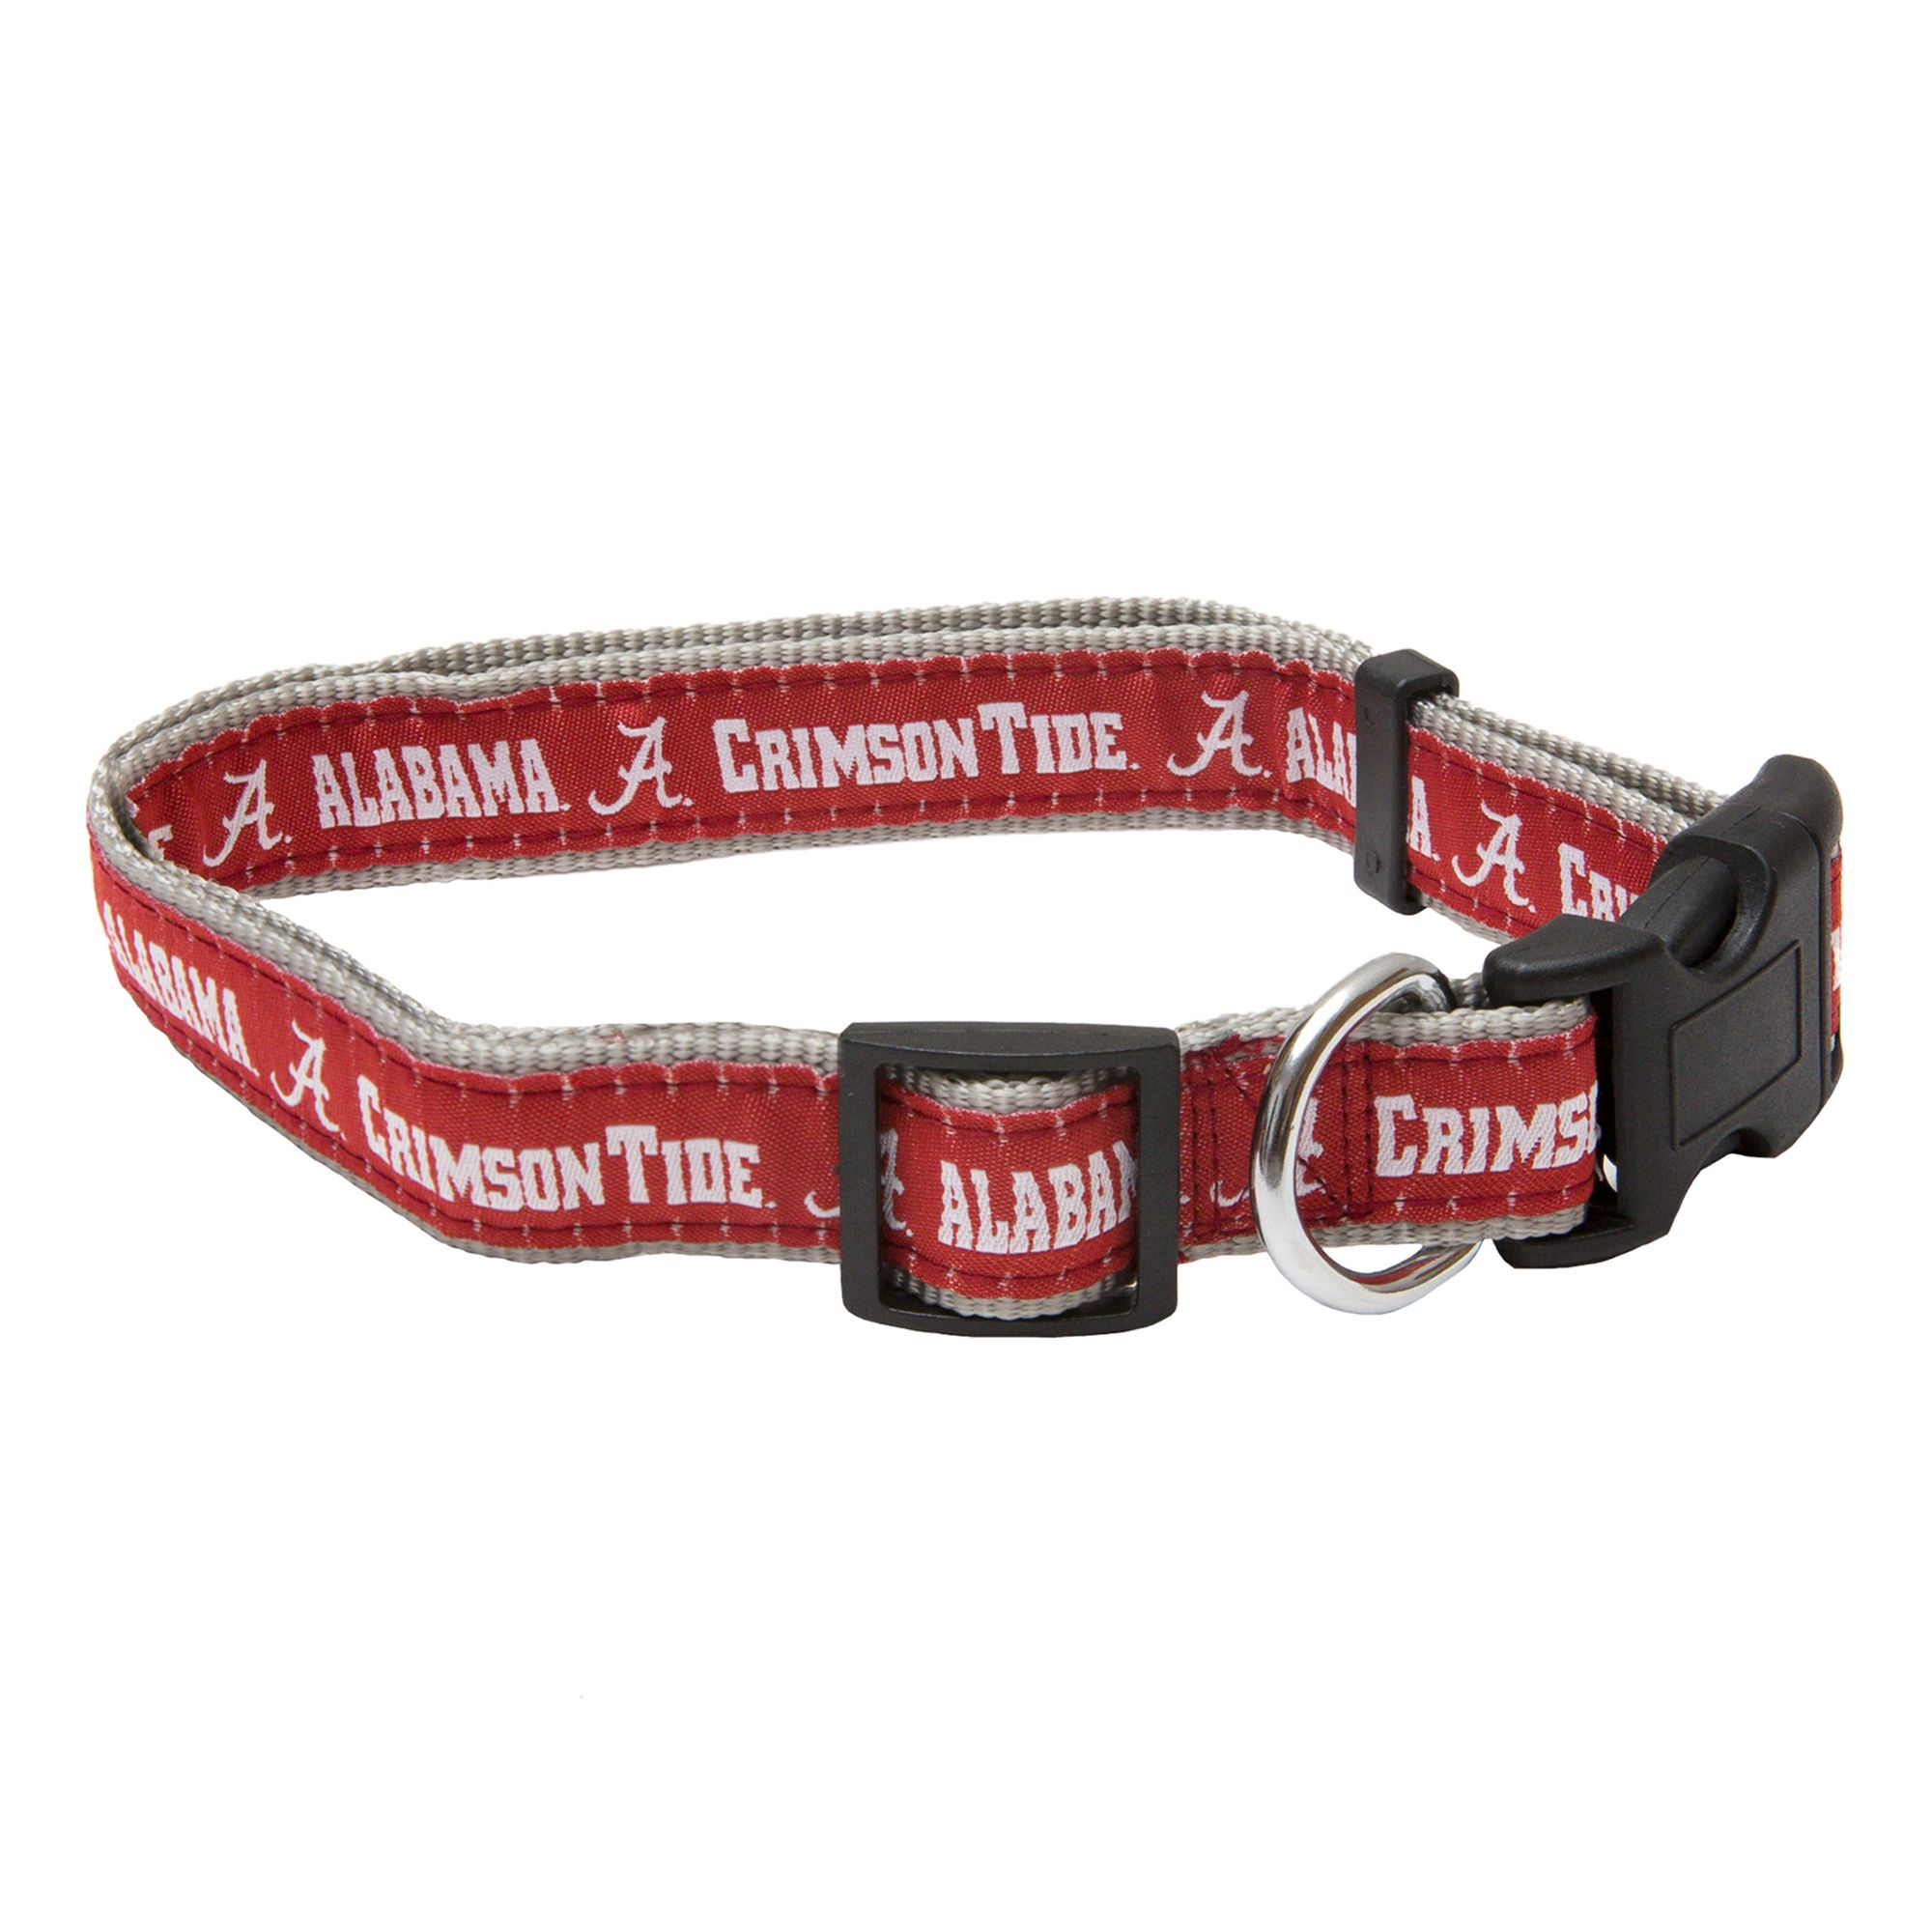 University of Alabama Crimson Tide Collar size: Large, Red, Pets First 5217835